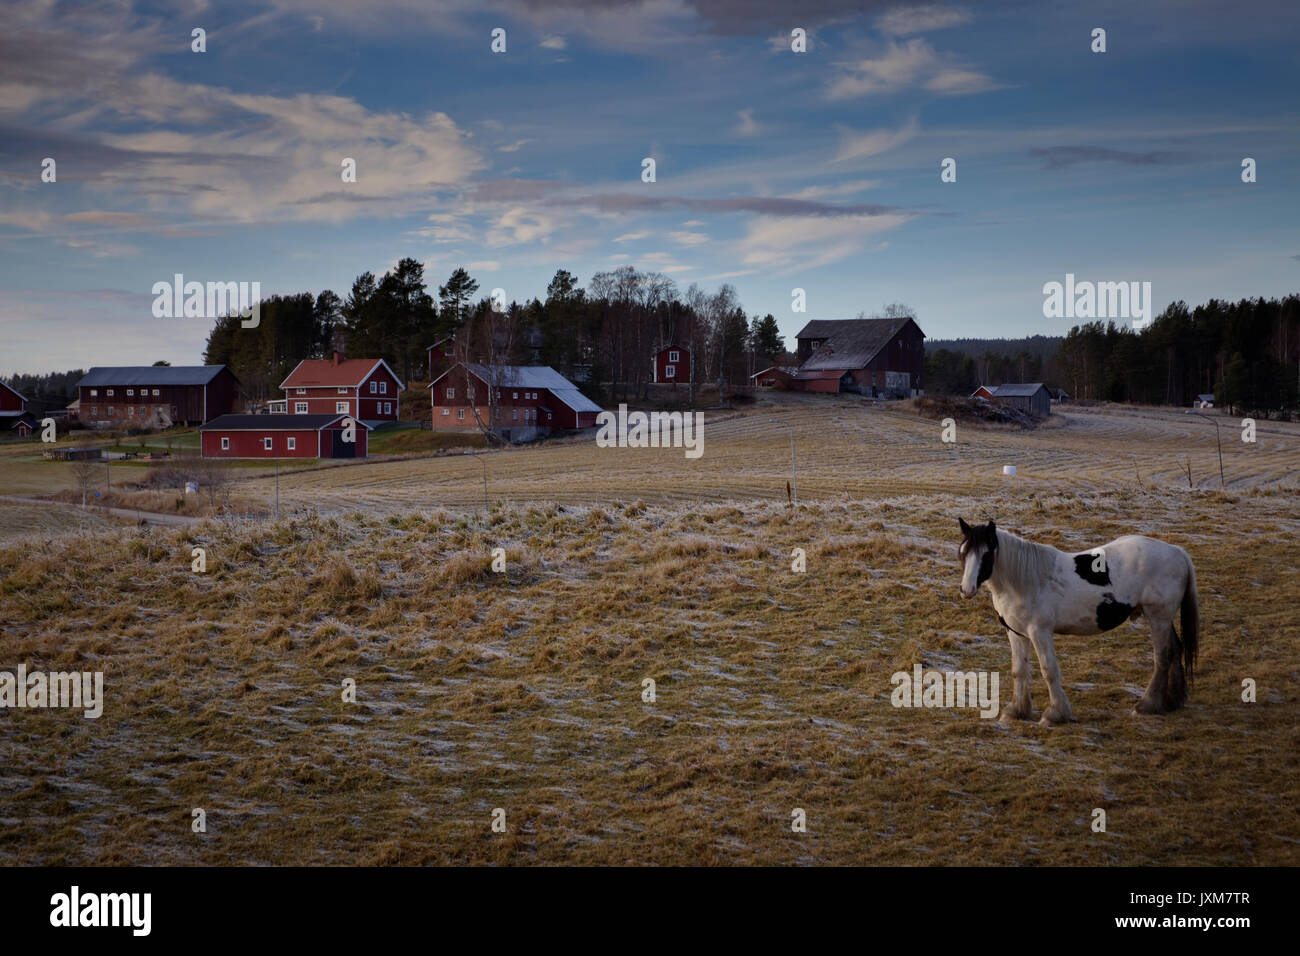 A Tinker horse is standing on a frosty pasture under a cloudy sky in Anundsjoe, Sweden. - Stock Image